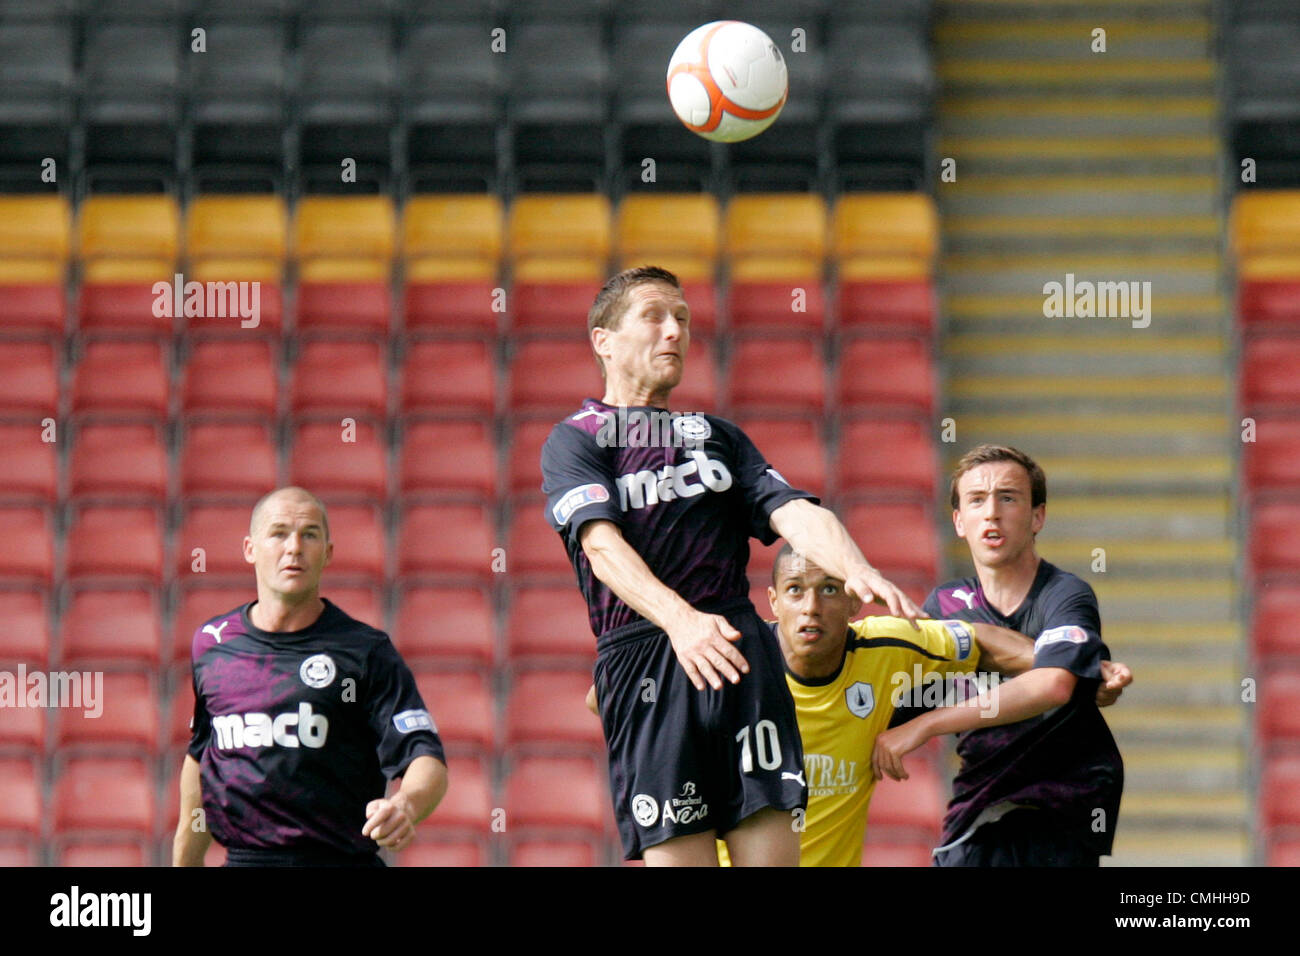 11th Aug 2012. 11.08.2012 Glasgow, Scotland.  10 Hugh Murray in action during the Scottish Football League Division - Stock Image